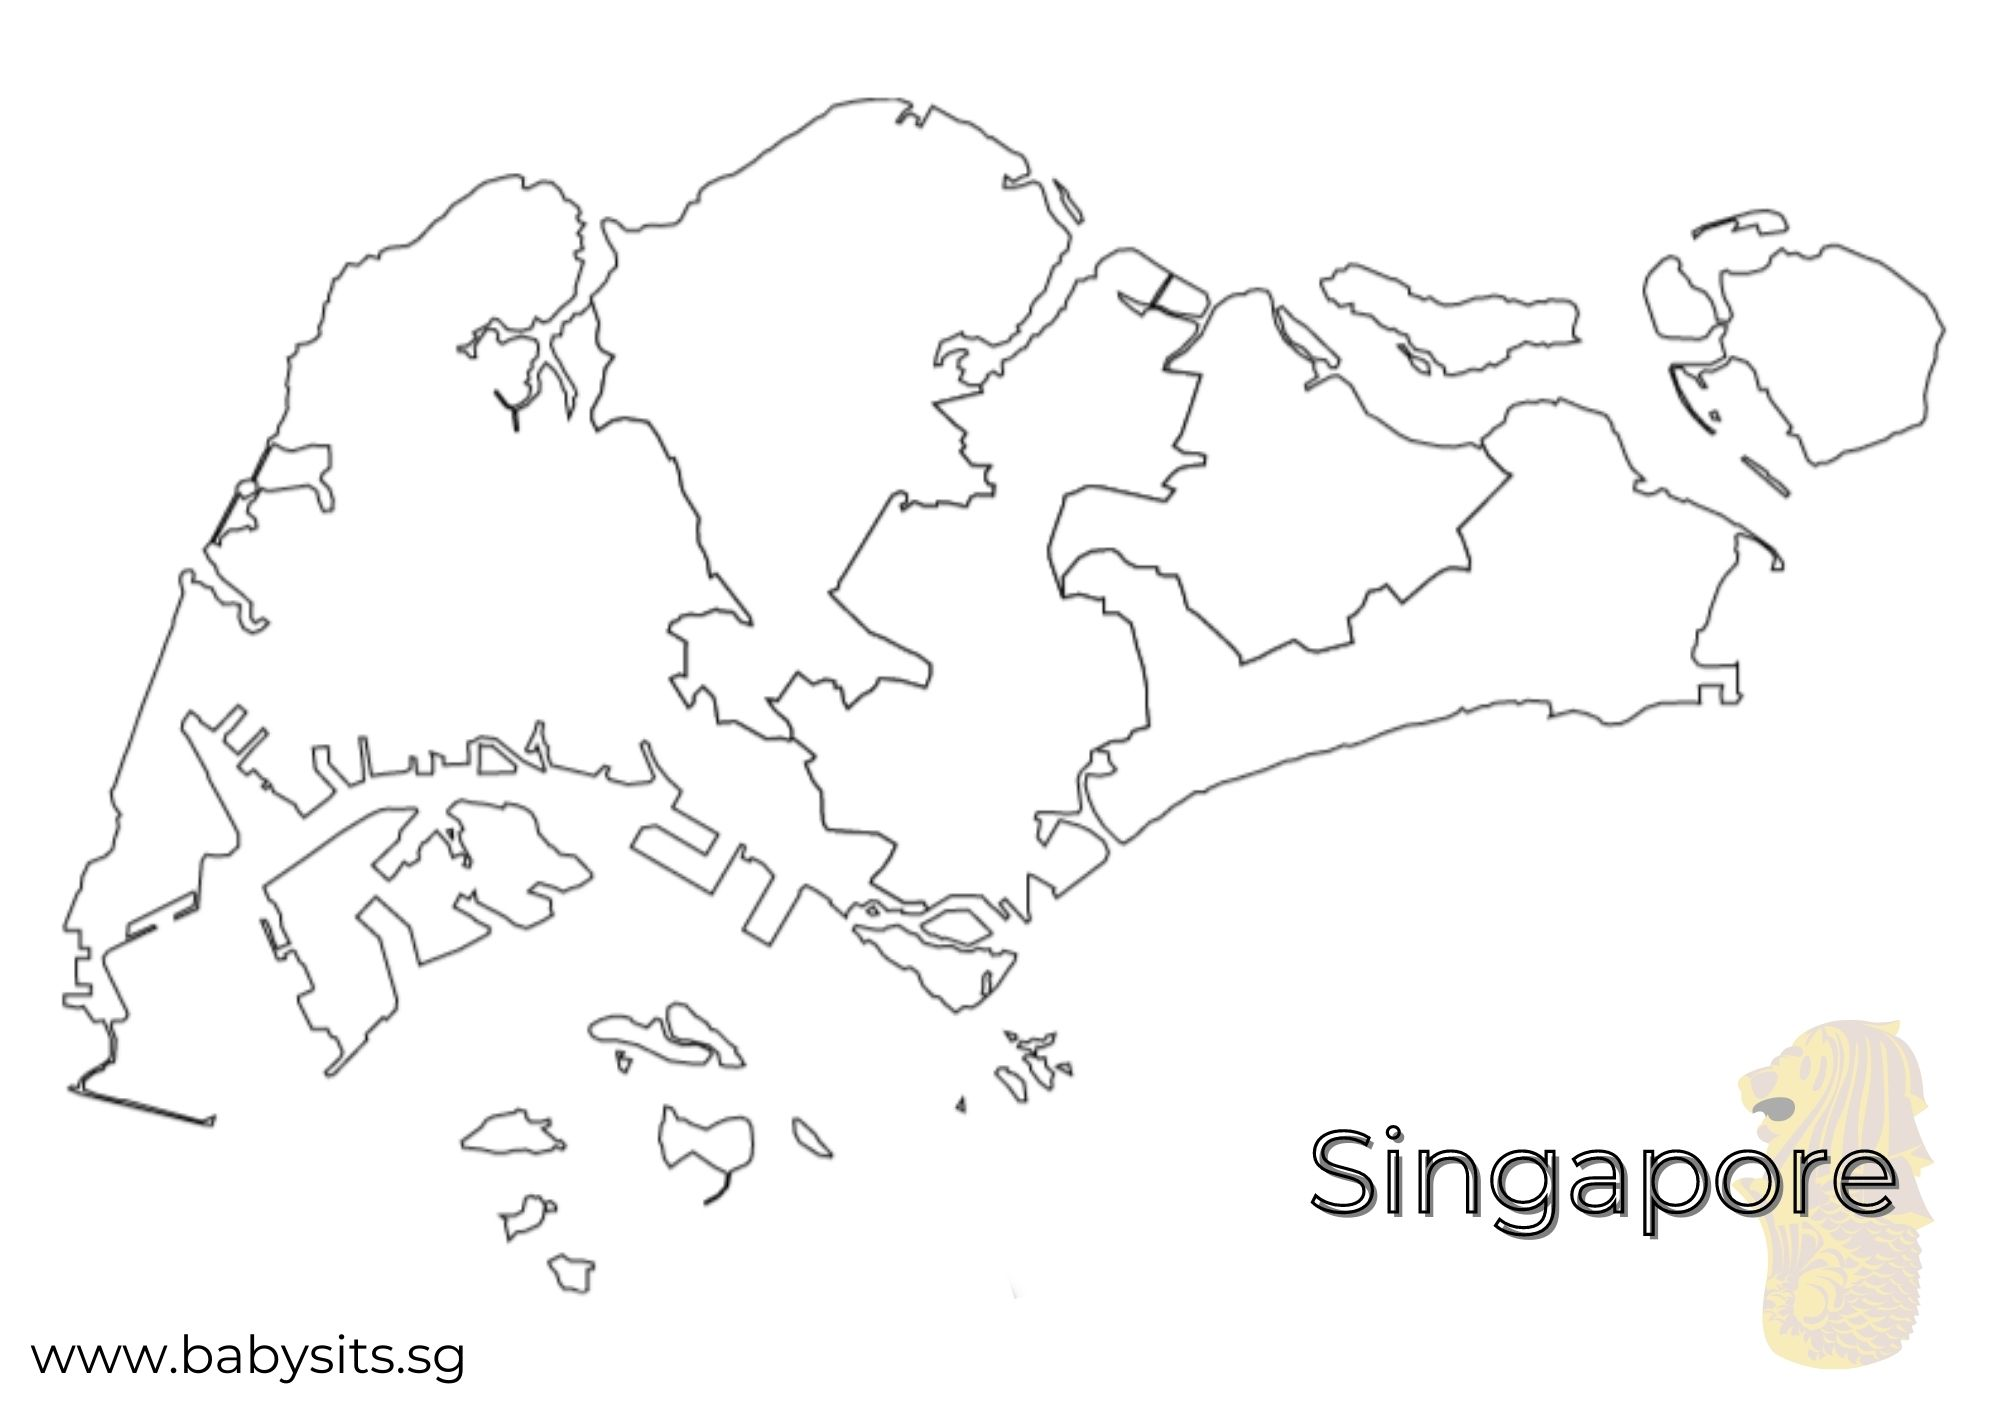 Singapore map colouring page